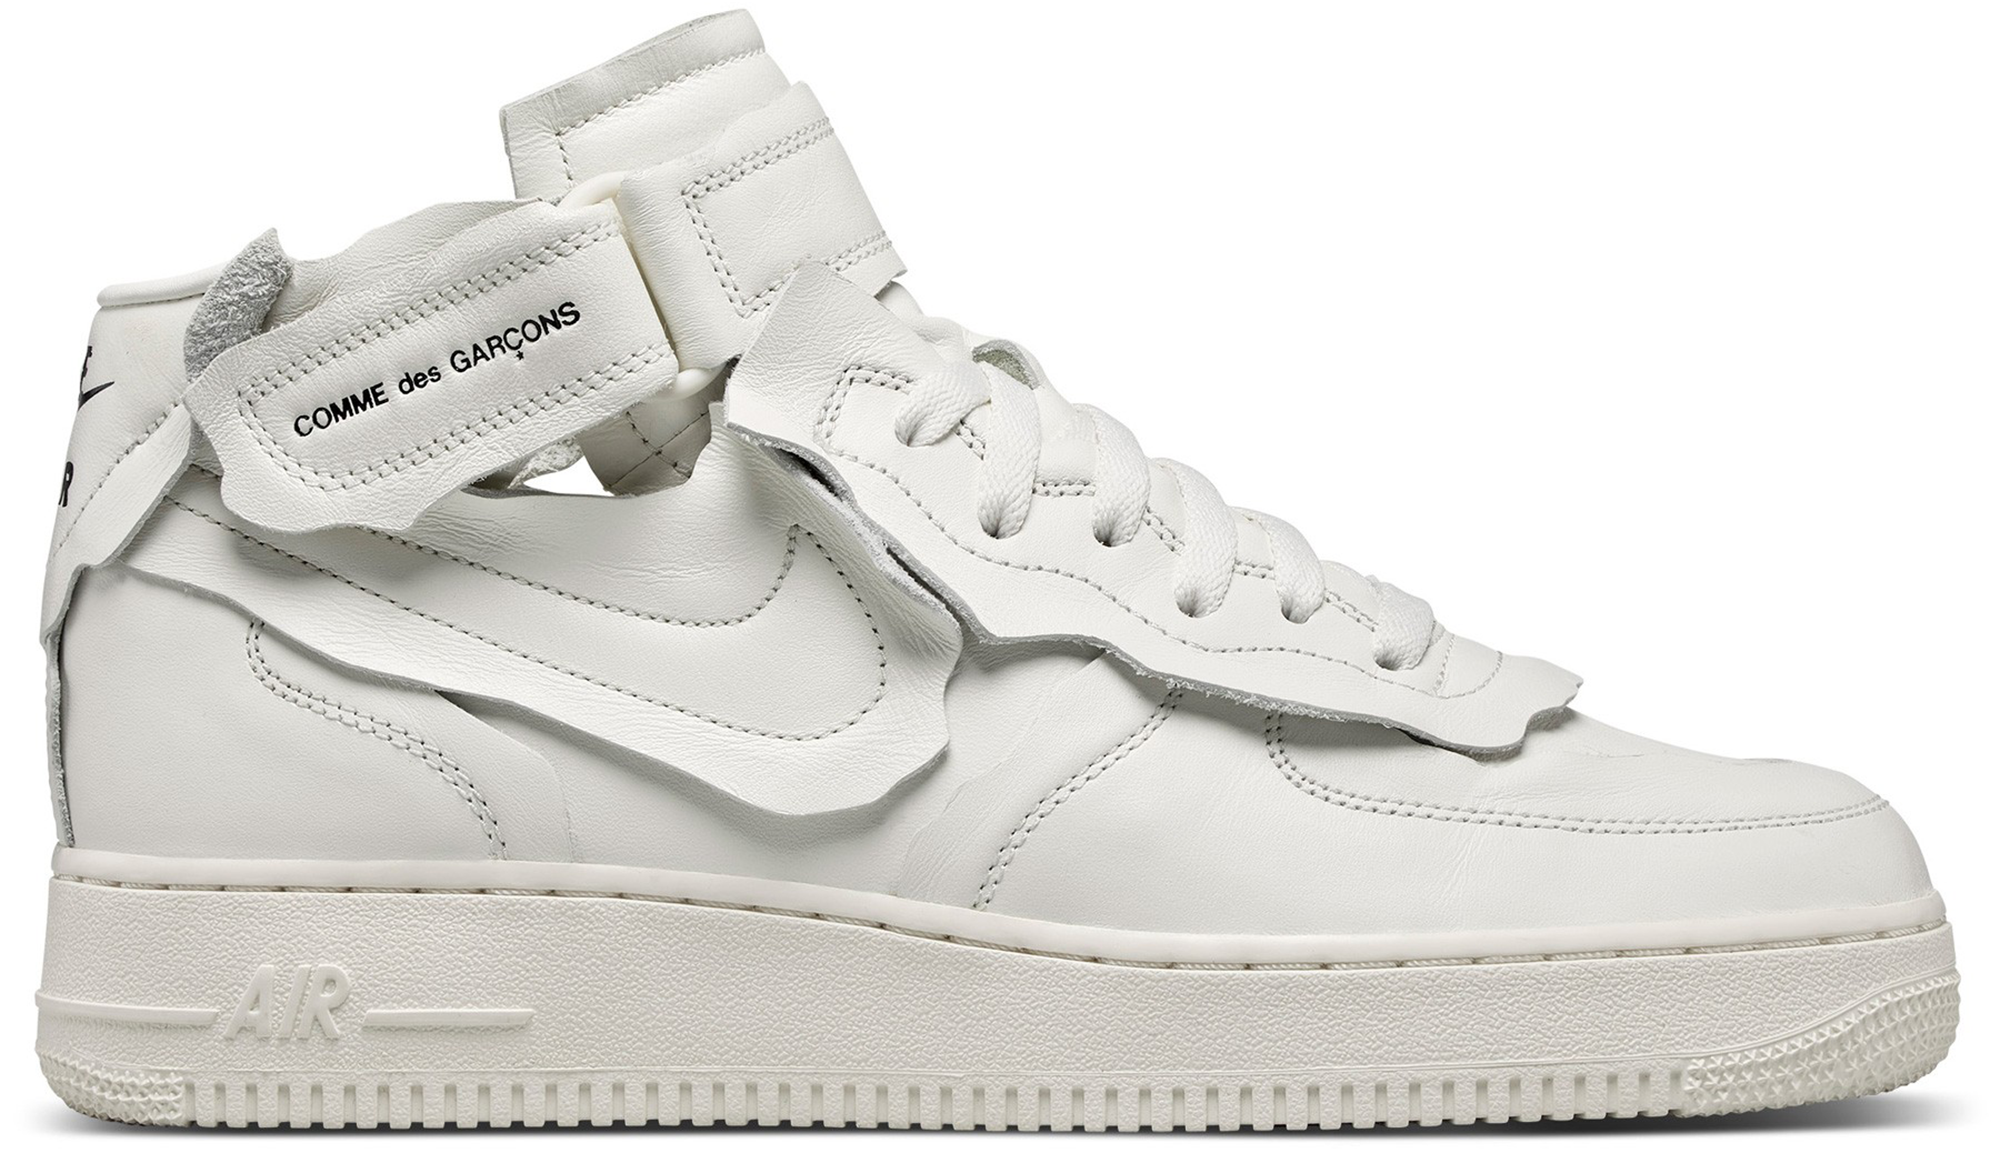 Nike Air Force 1 Mid Comme des Garcons